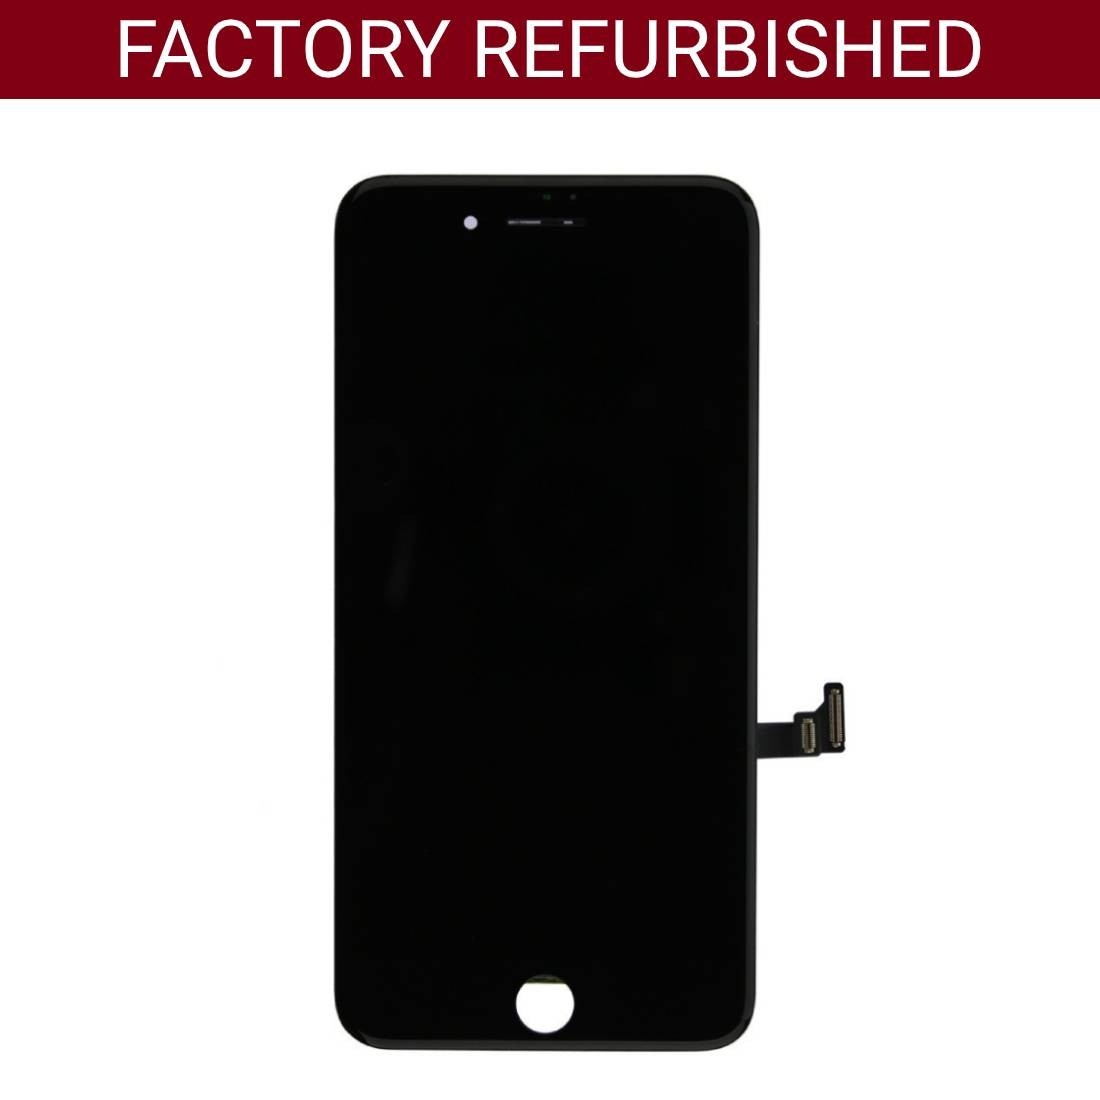 """Refurbished LCD Screen Replacement for iPhone 7 Black 4.7"""""""